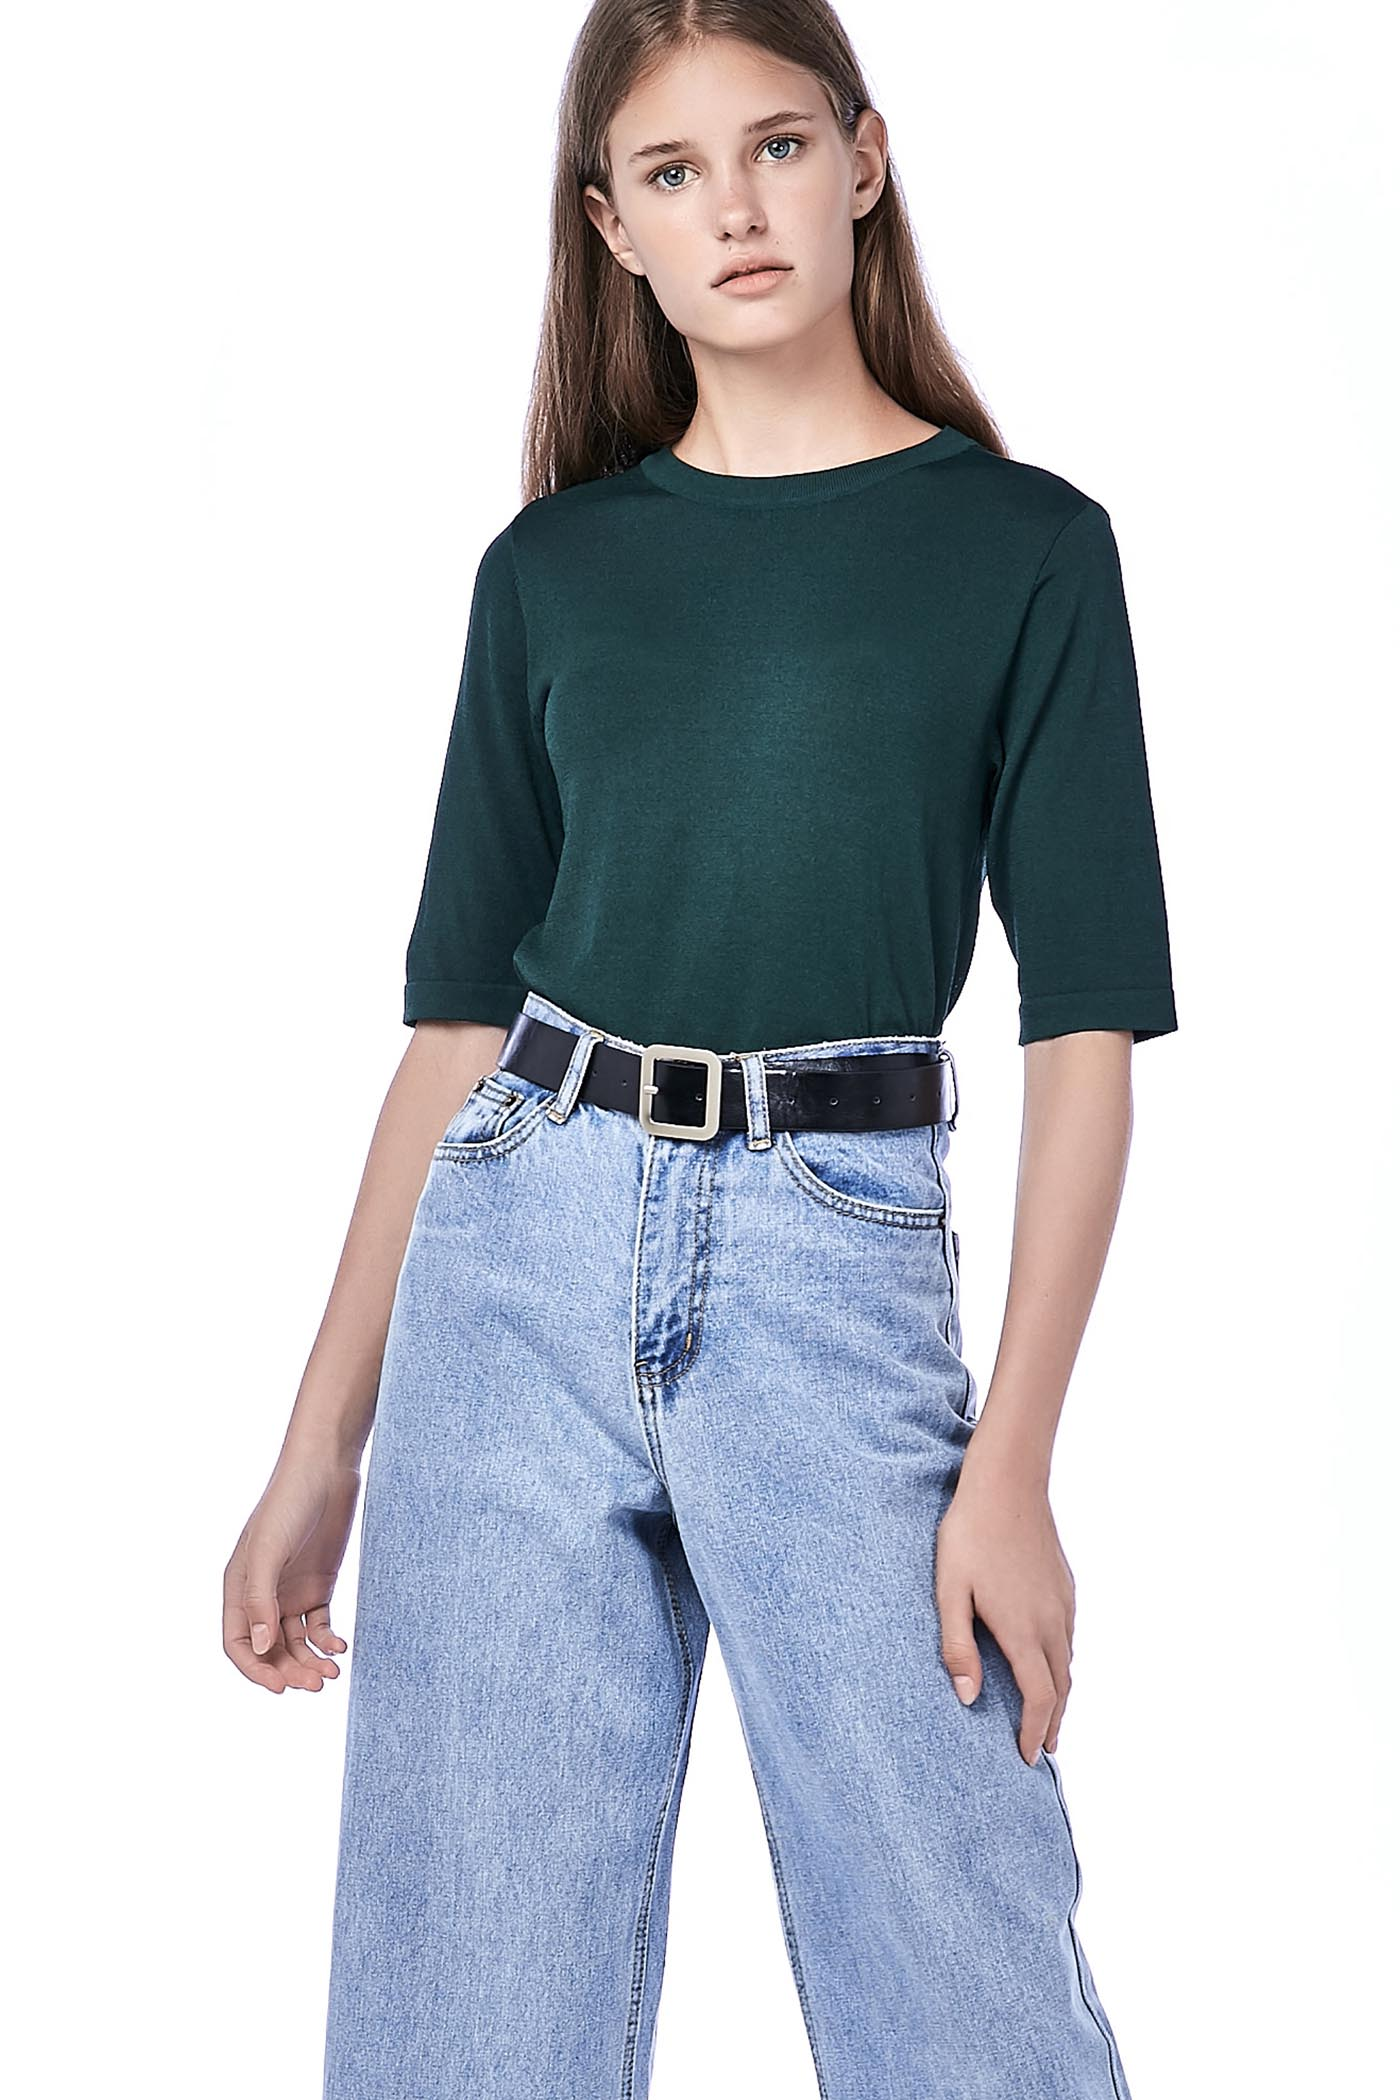 Violla Knit Top